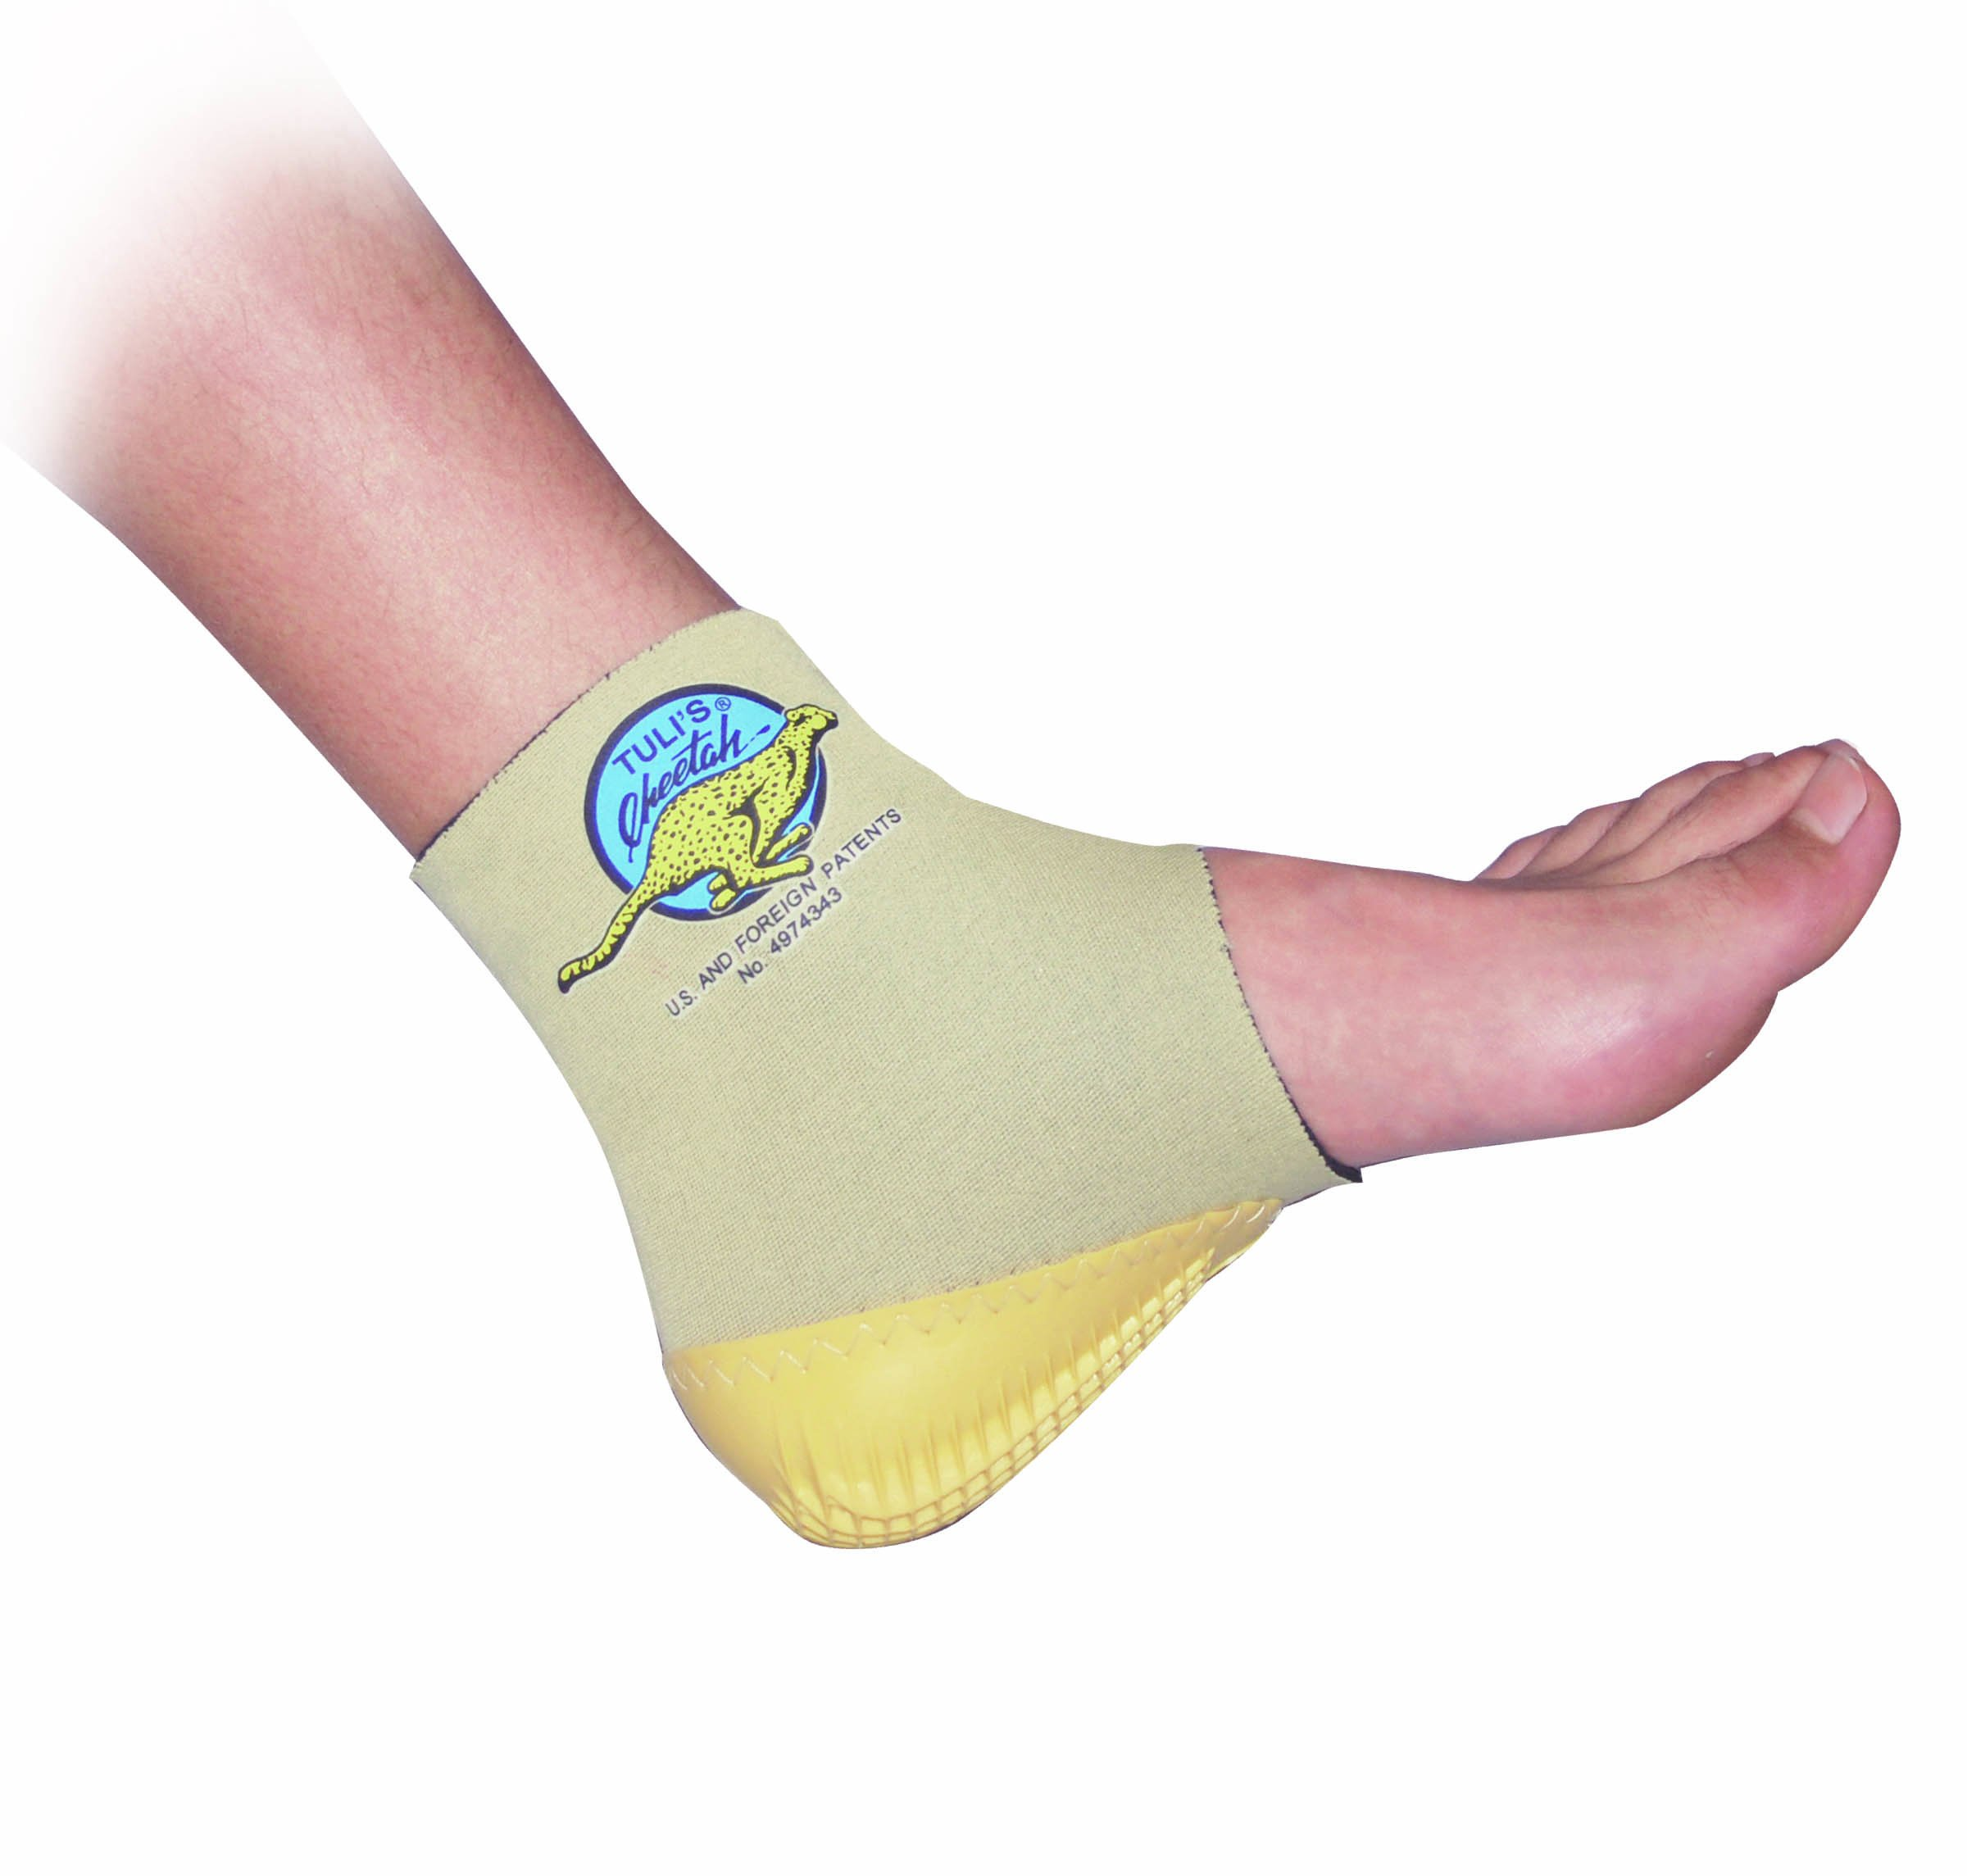 Tuli's Cheetah Heel Protector - Fitted Ankle Support for Gymnasts and Dancers - Small (7.5'' - 8.5'')